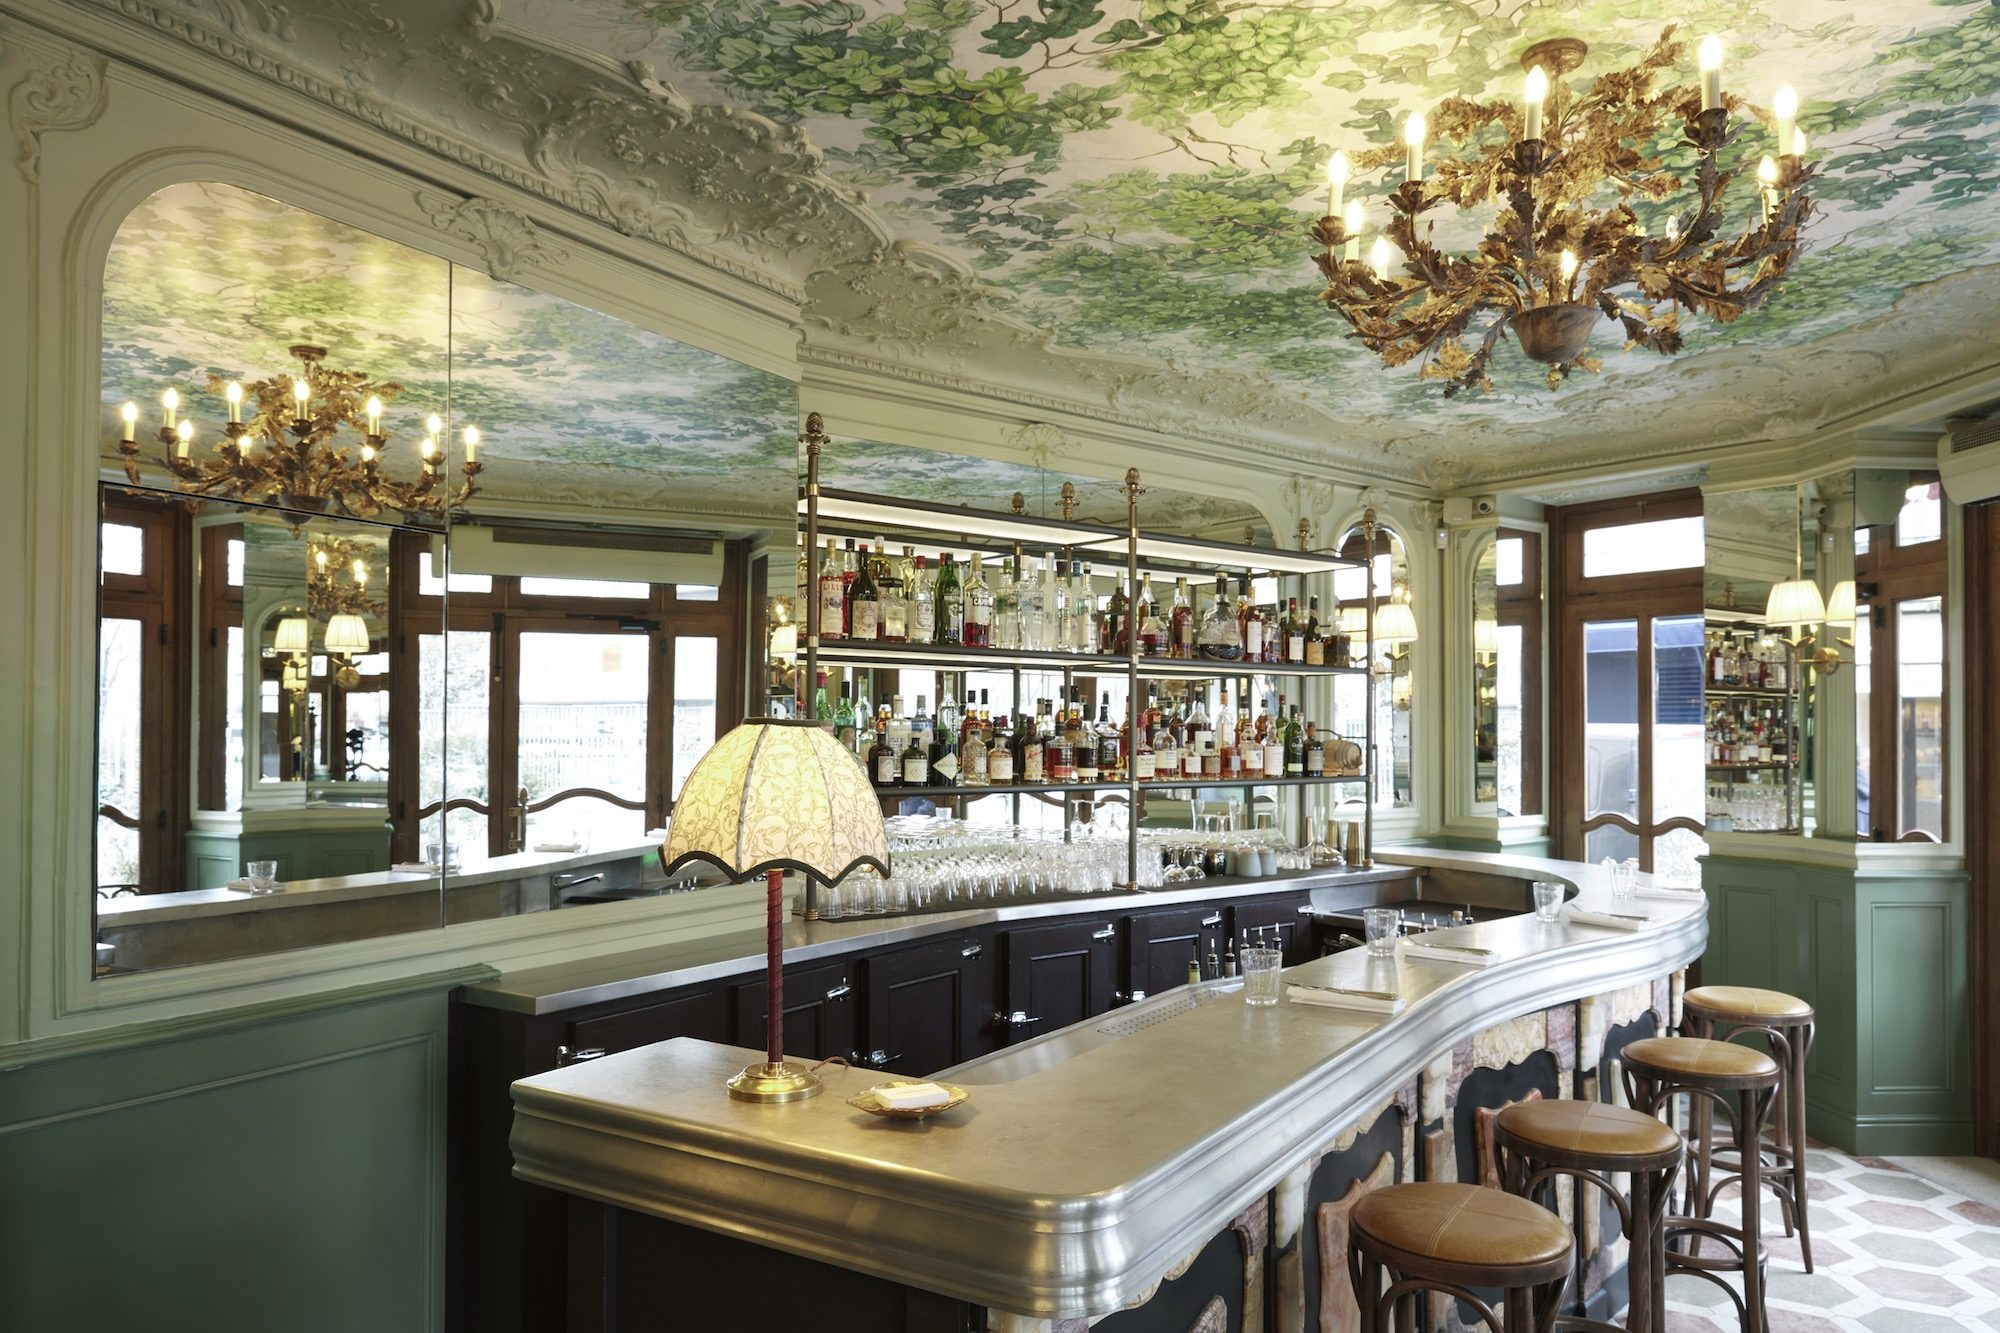 The magnificent Art Nouveau interiors of Le Chardenoux bistro in Paris 11.